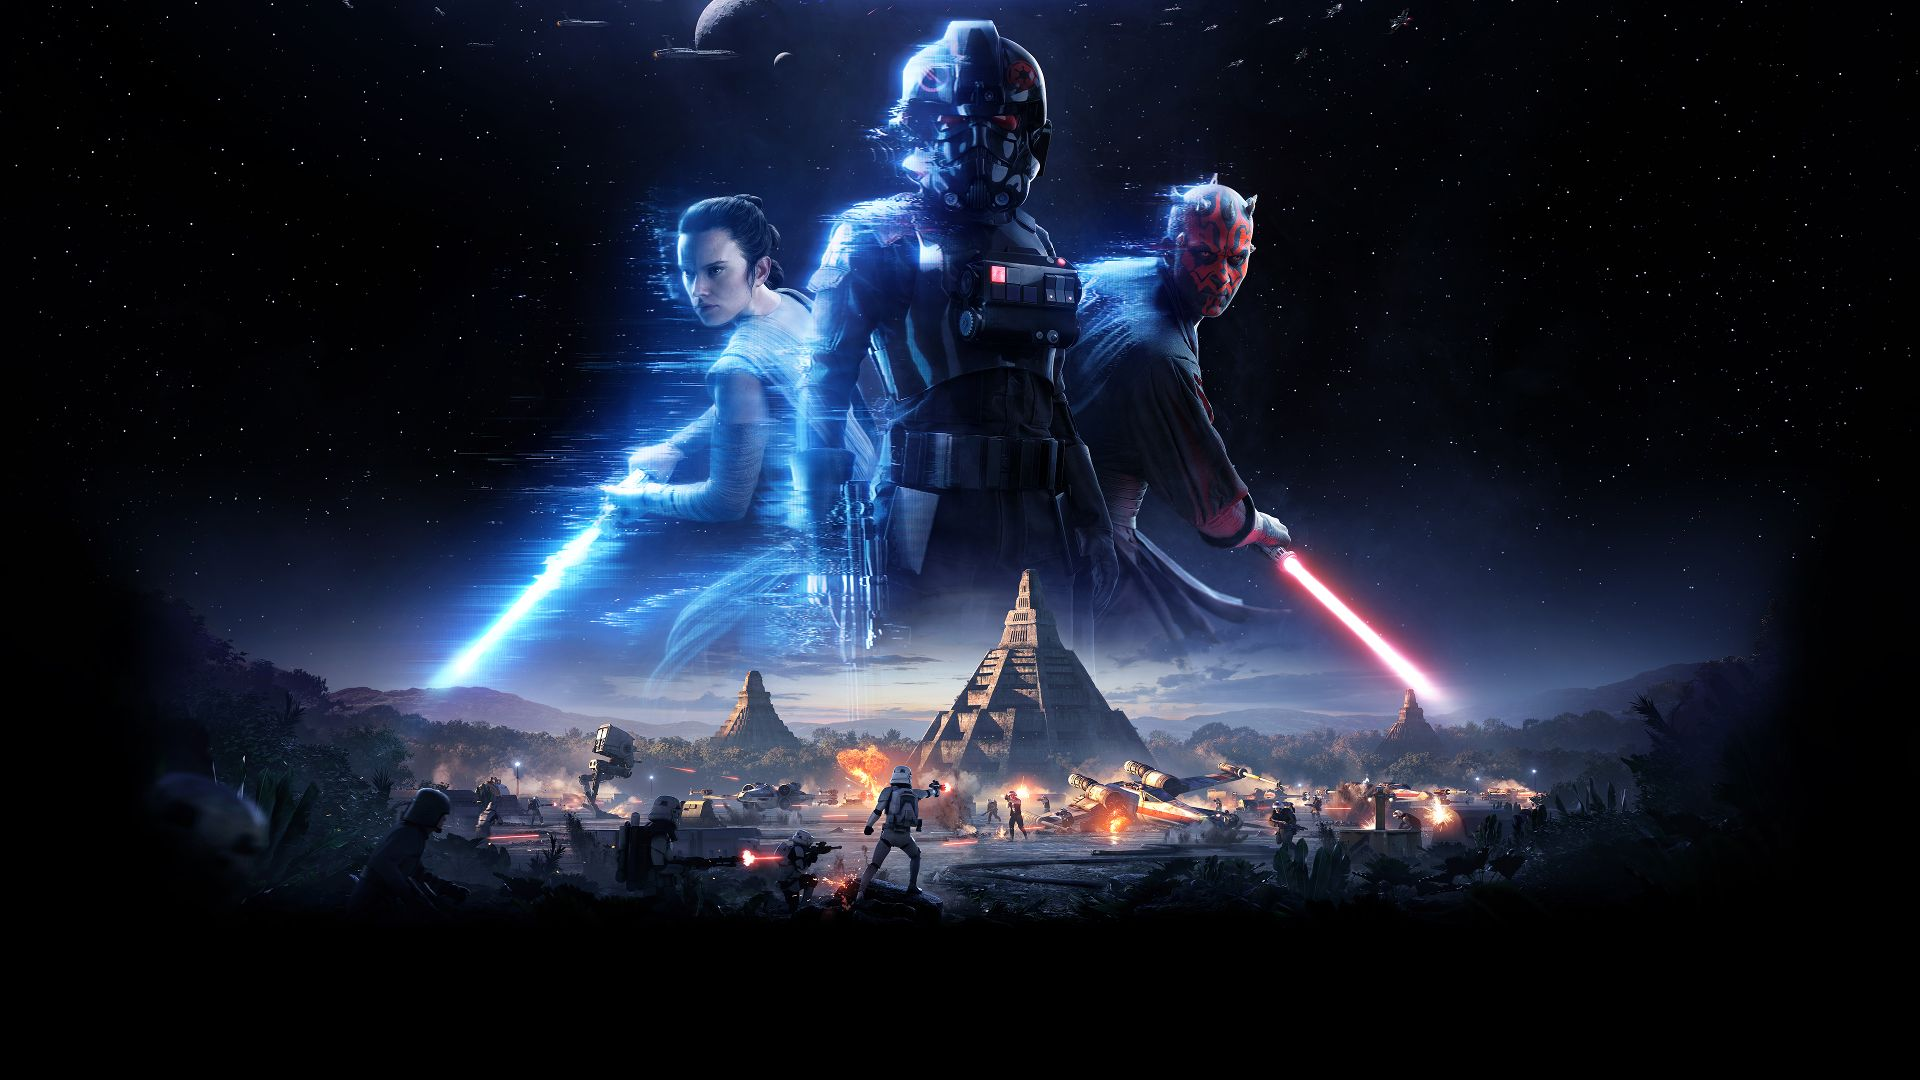 How To Get Your Gaming Setup Ready For Star Wars Battlefront 2 Turtle Beach Blog